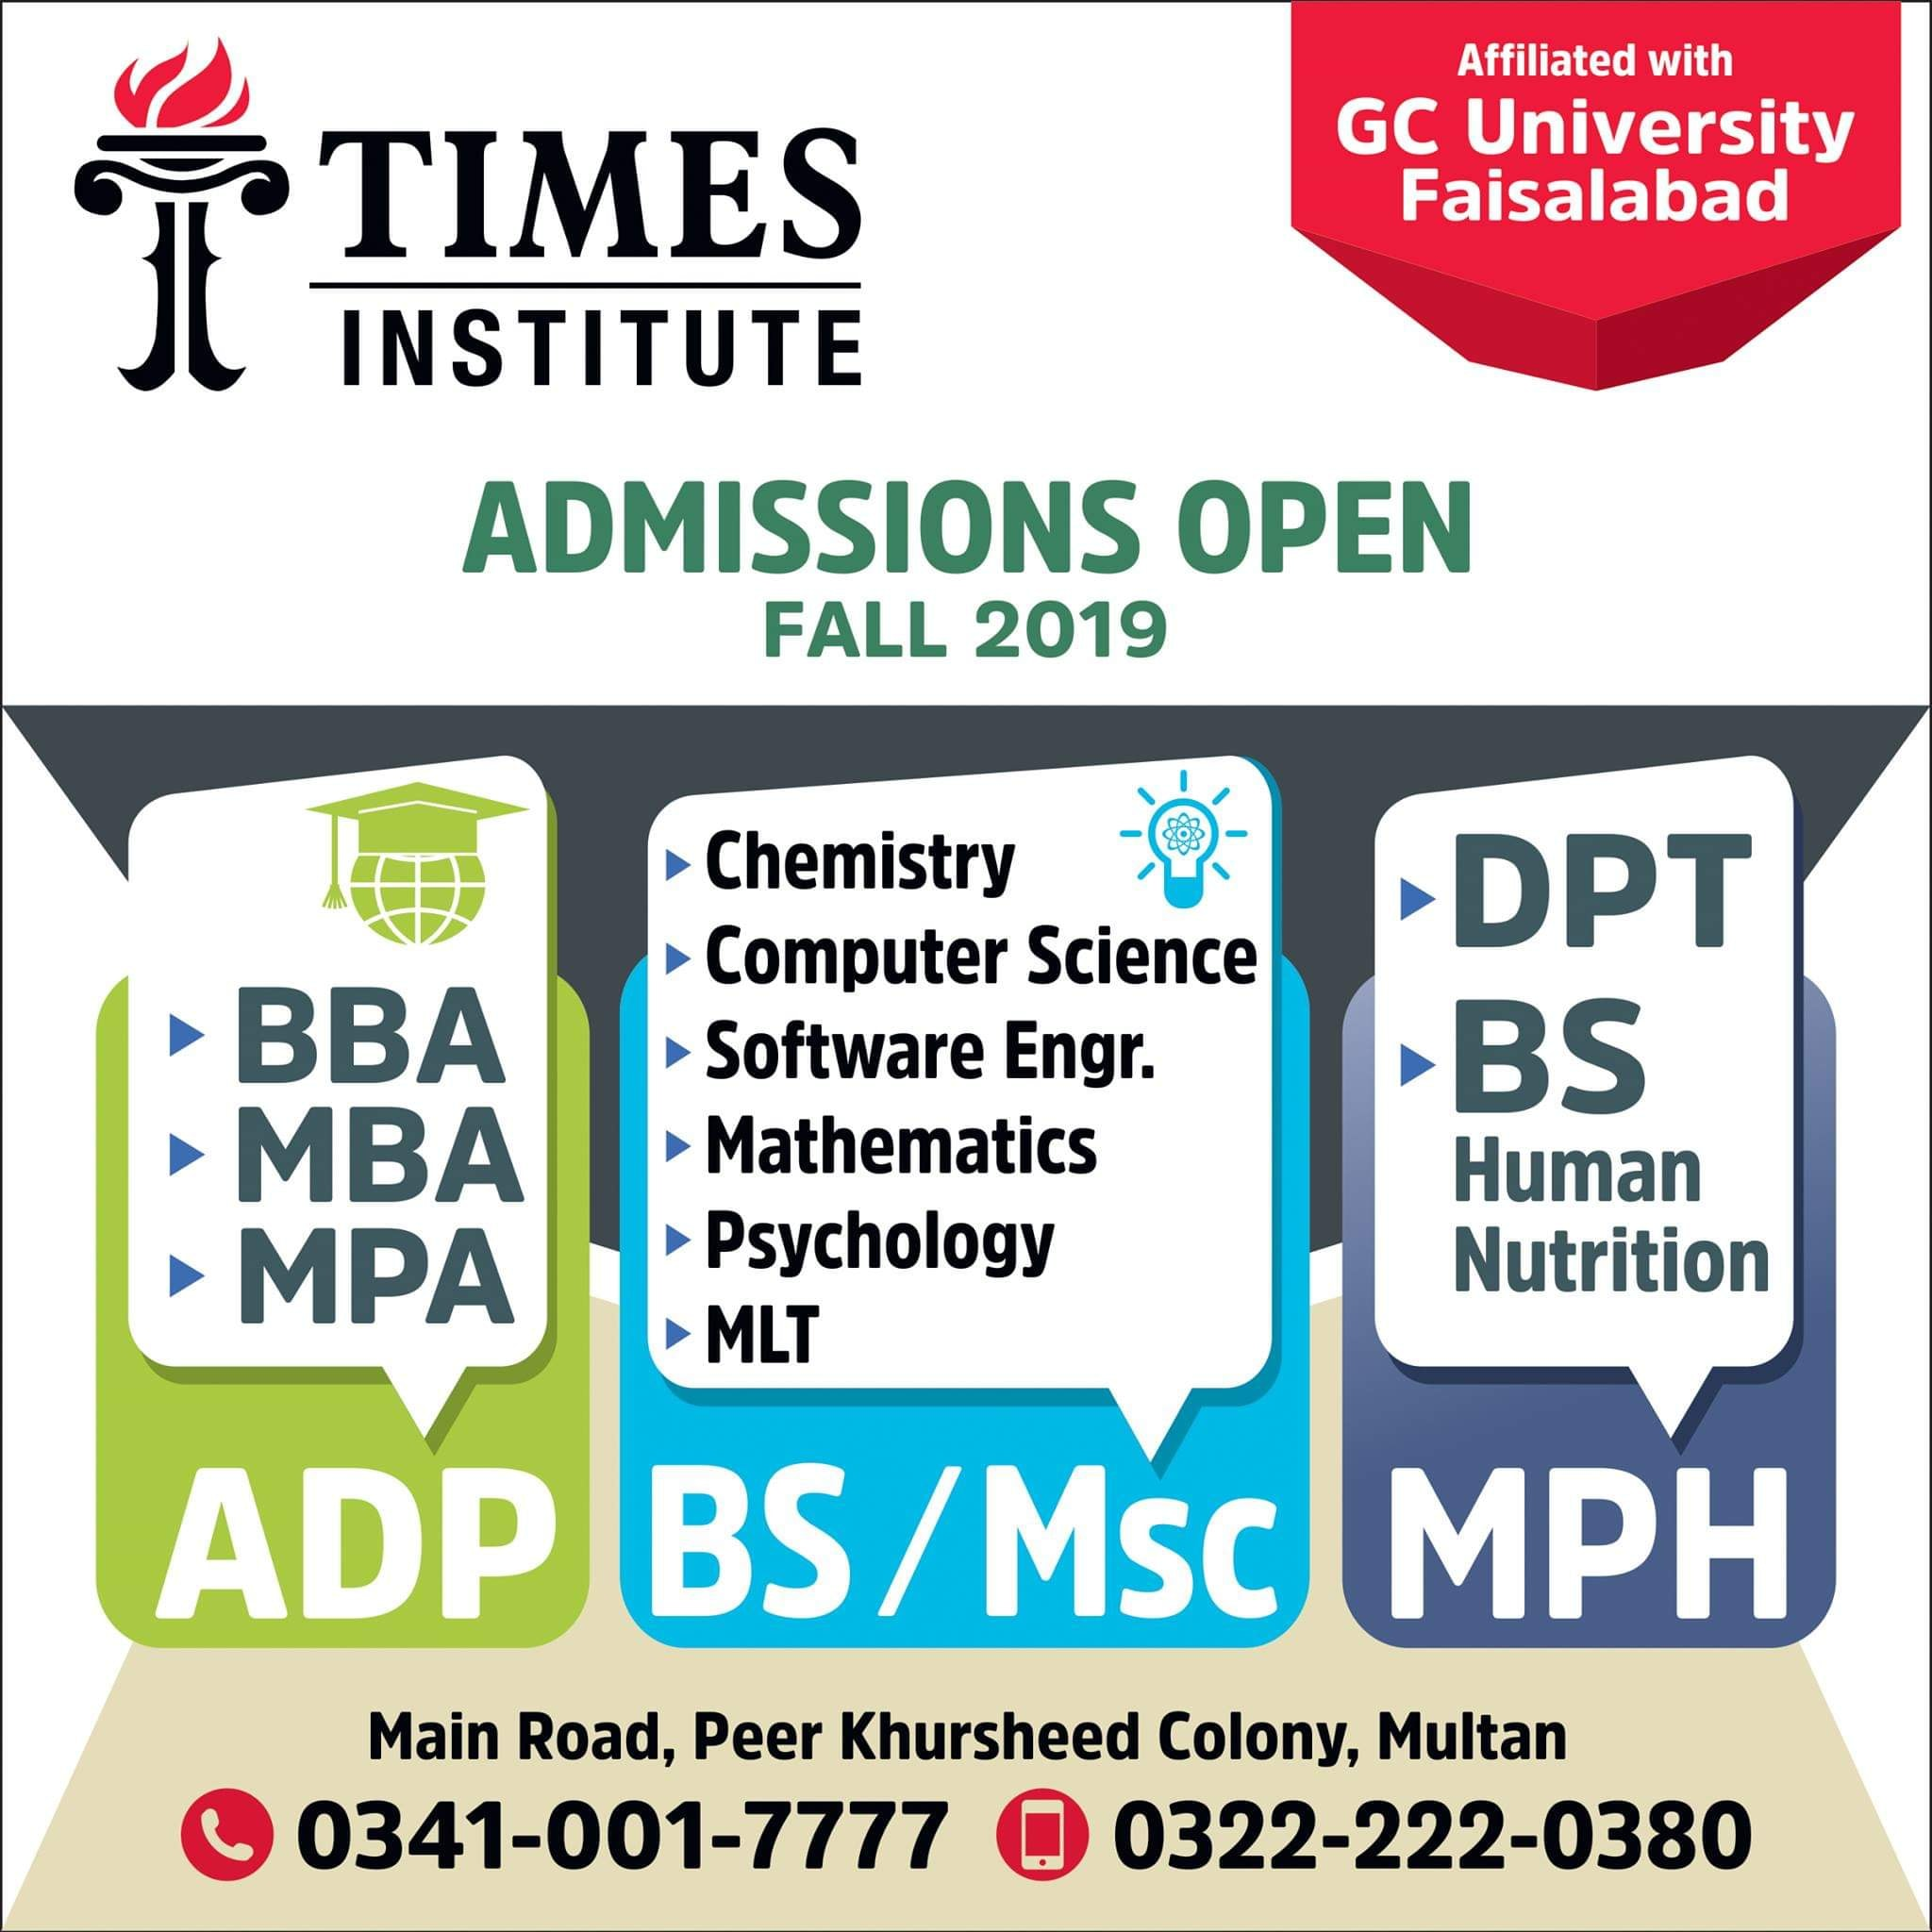 TIMES Institute Multan DPT Admission Open Fall 2019